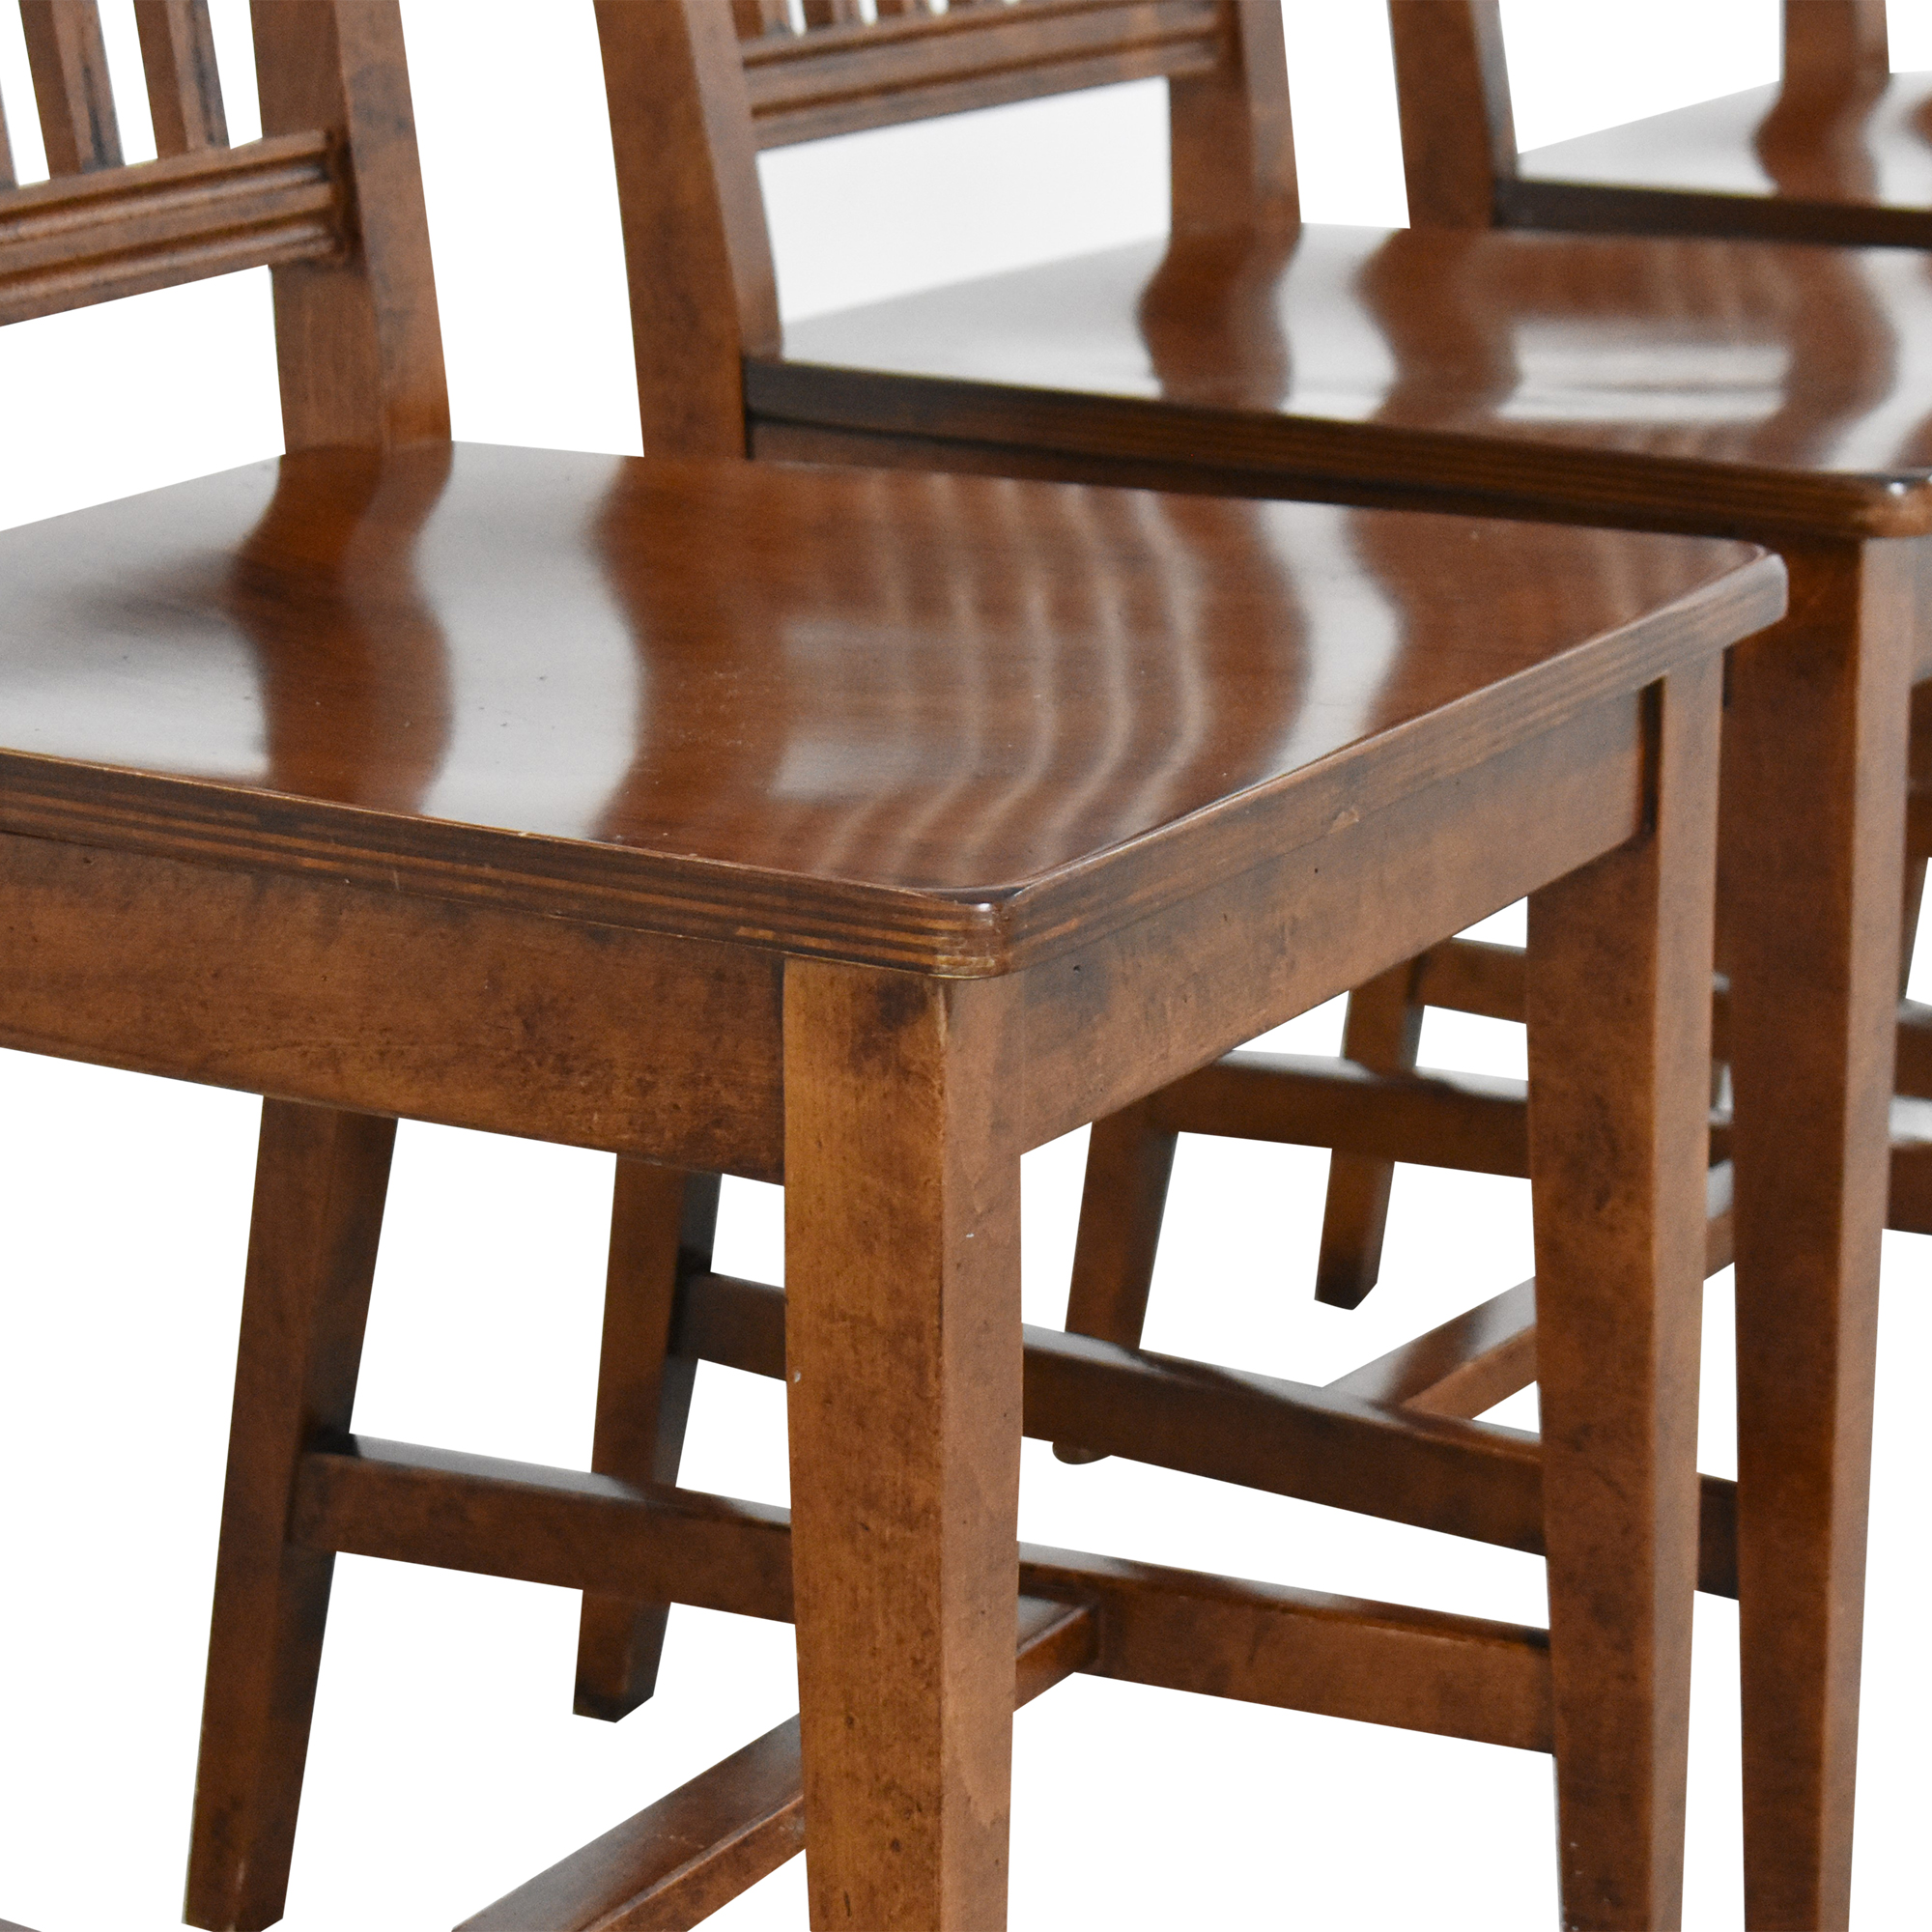 Crate & Barrel Crate & Barrel Village Nero Noche Dining Chairs used